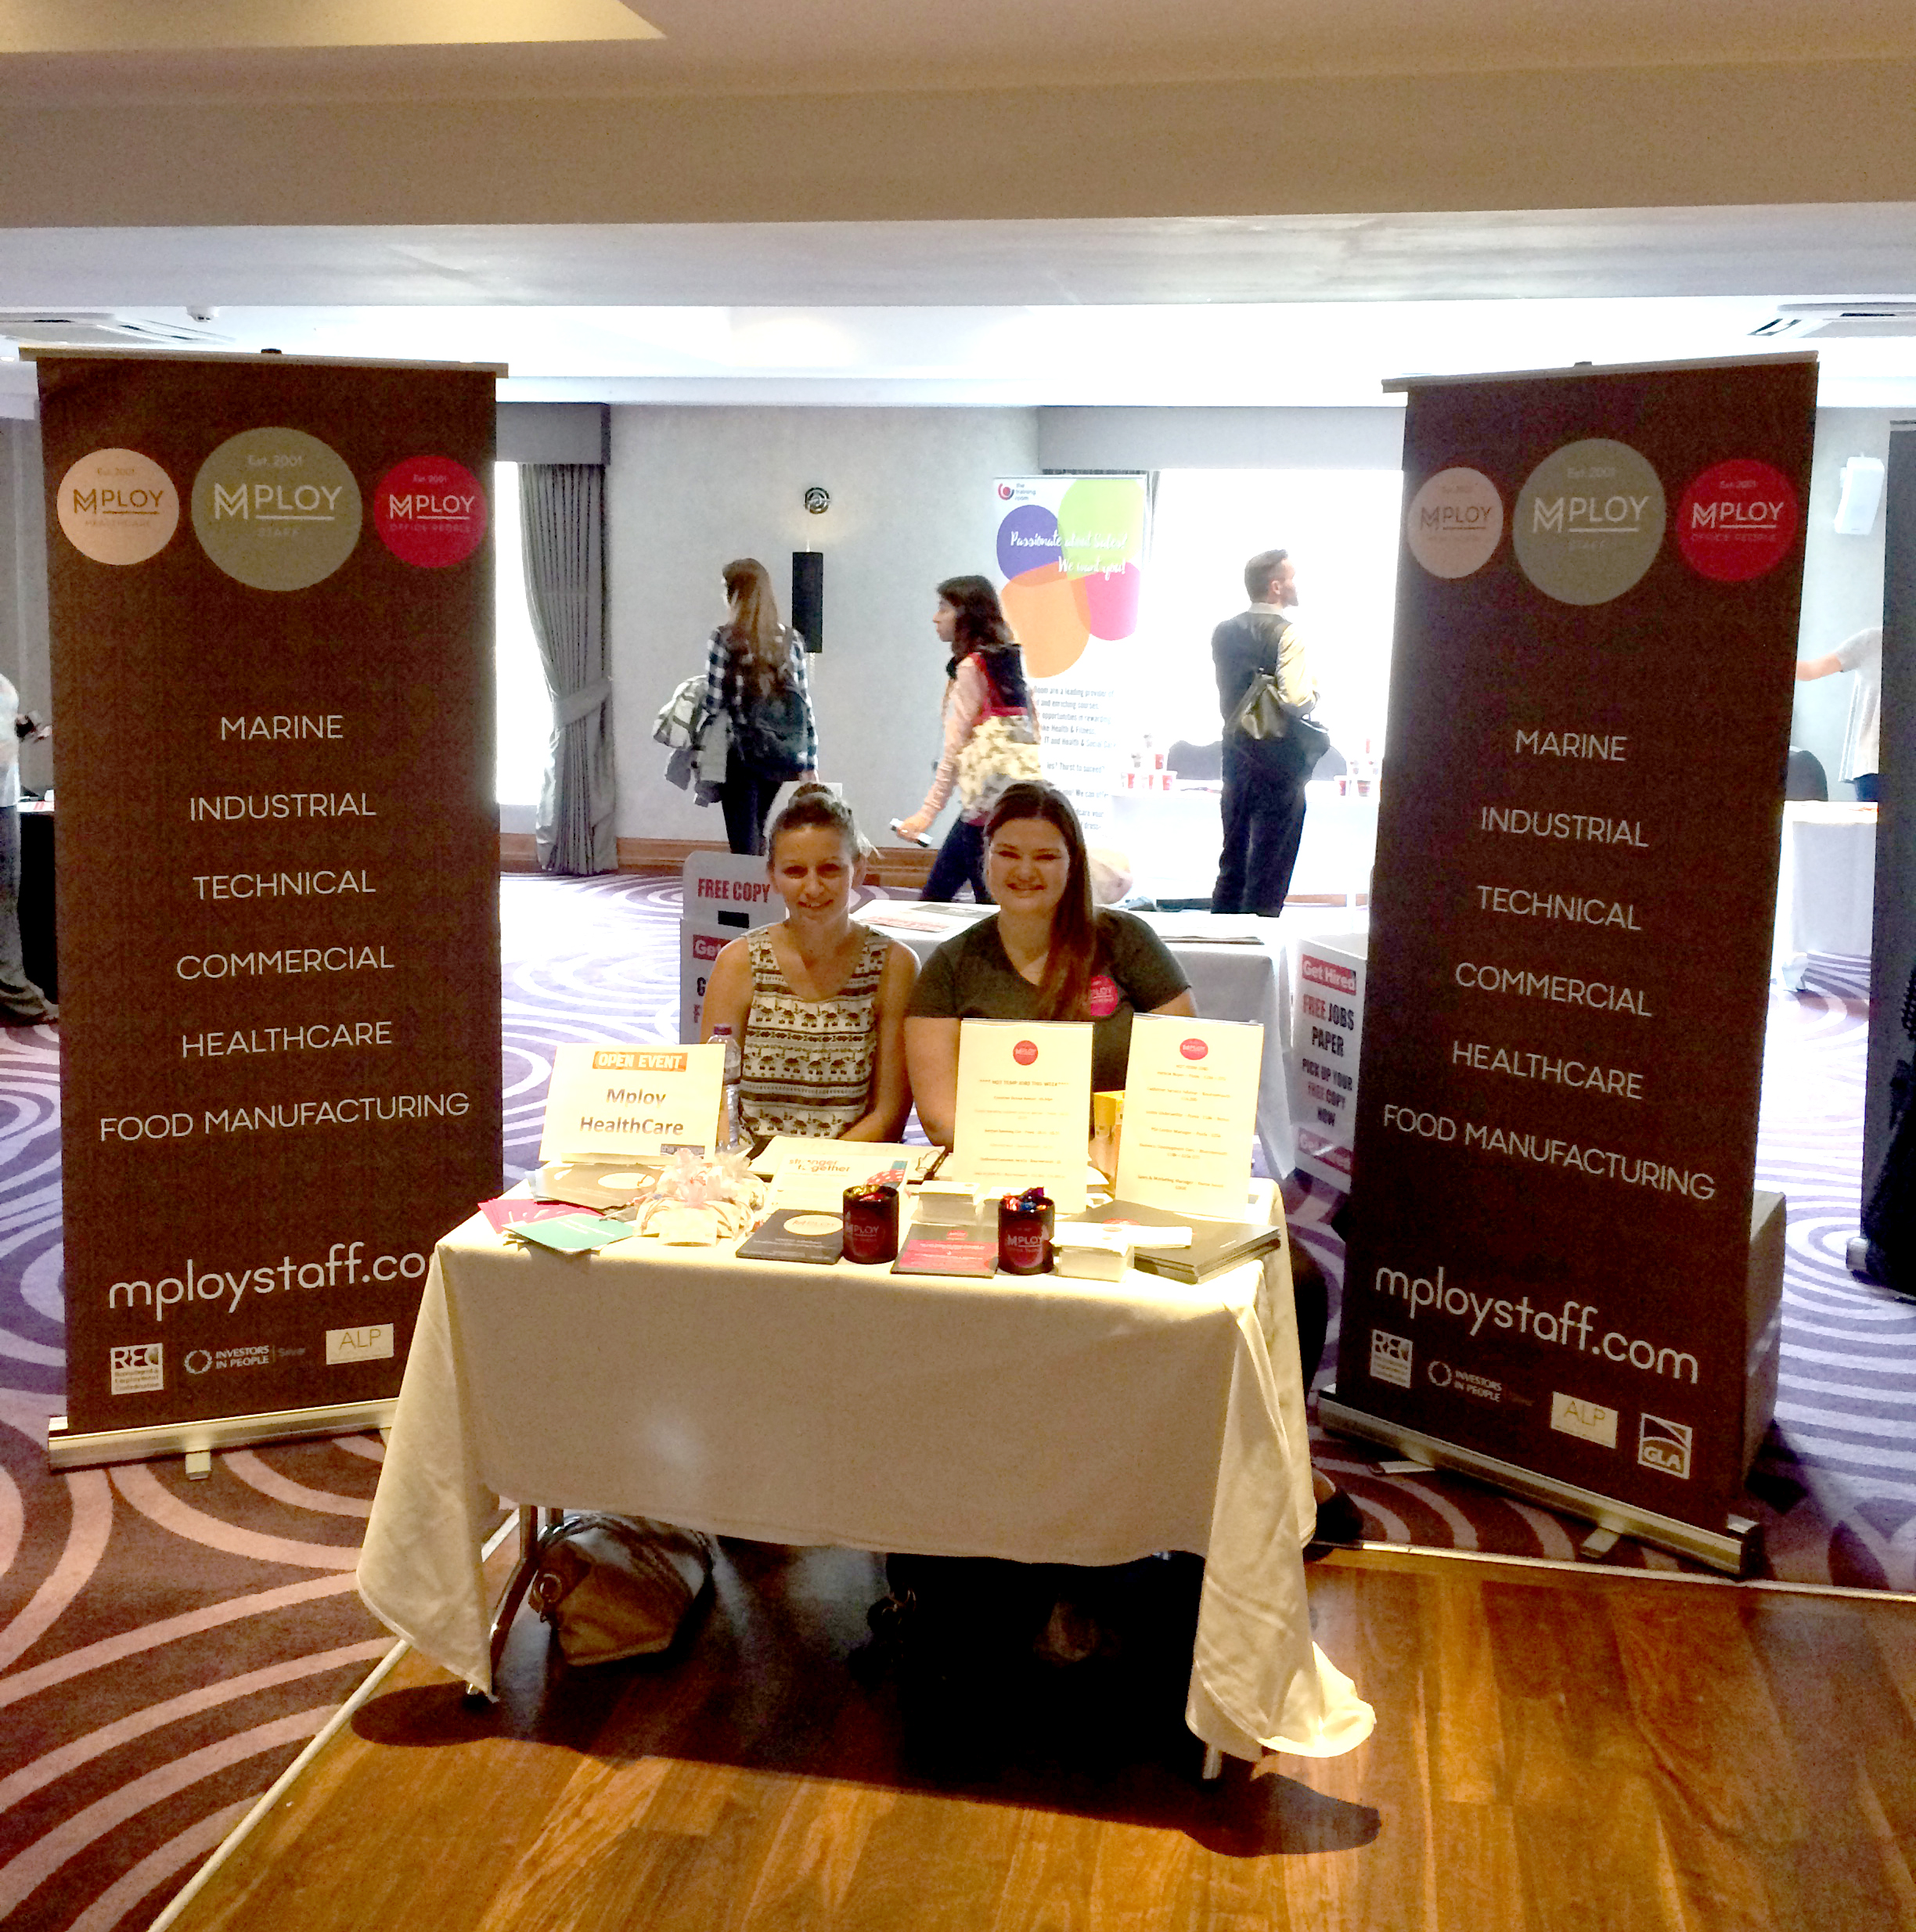 Mploy at Bournemouth Job Fair